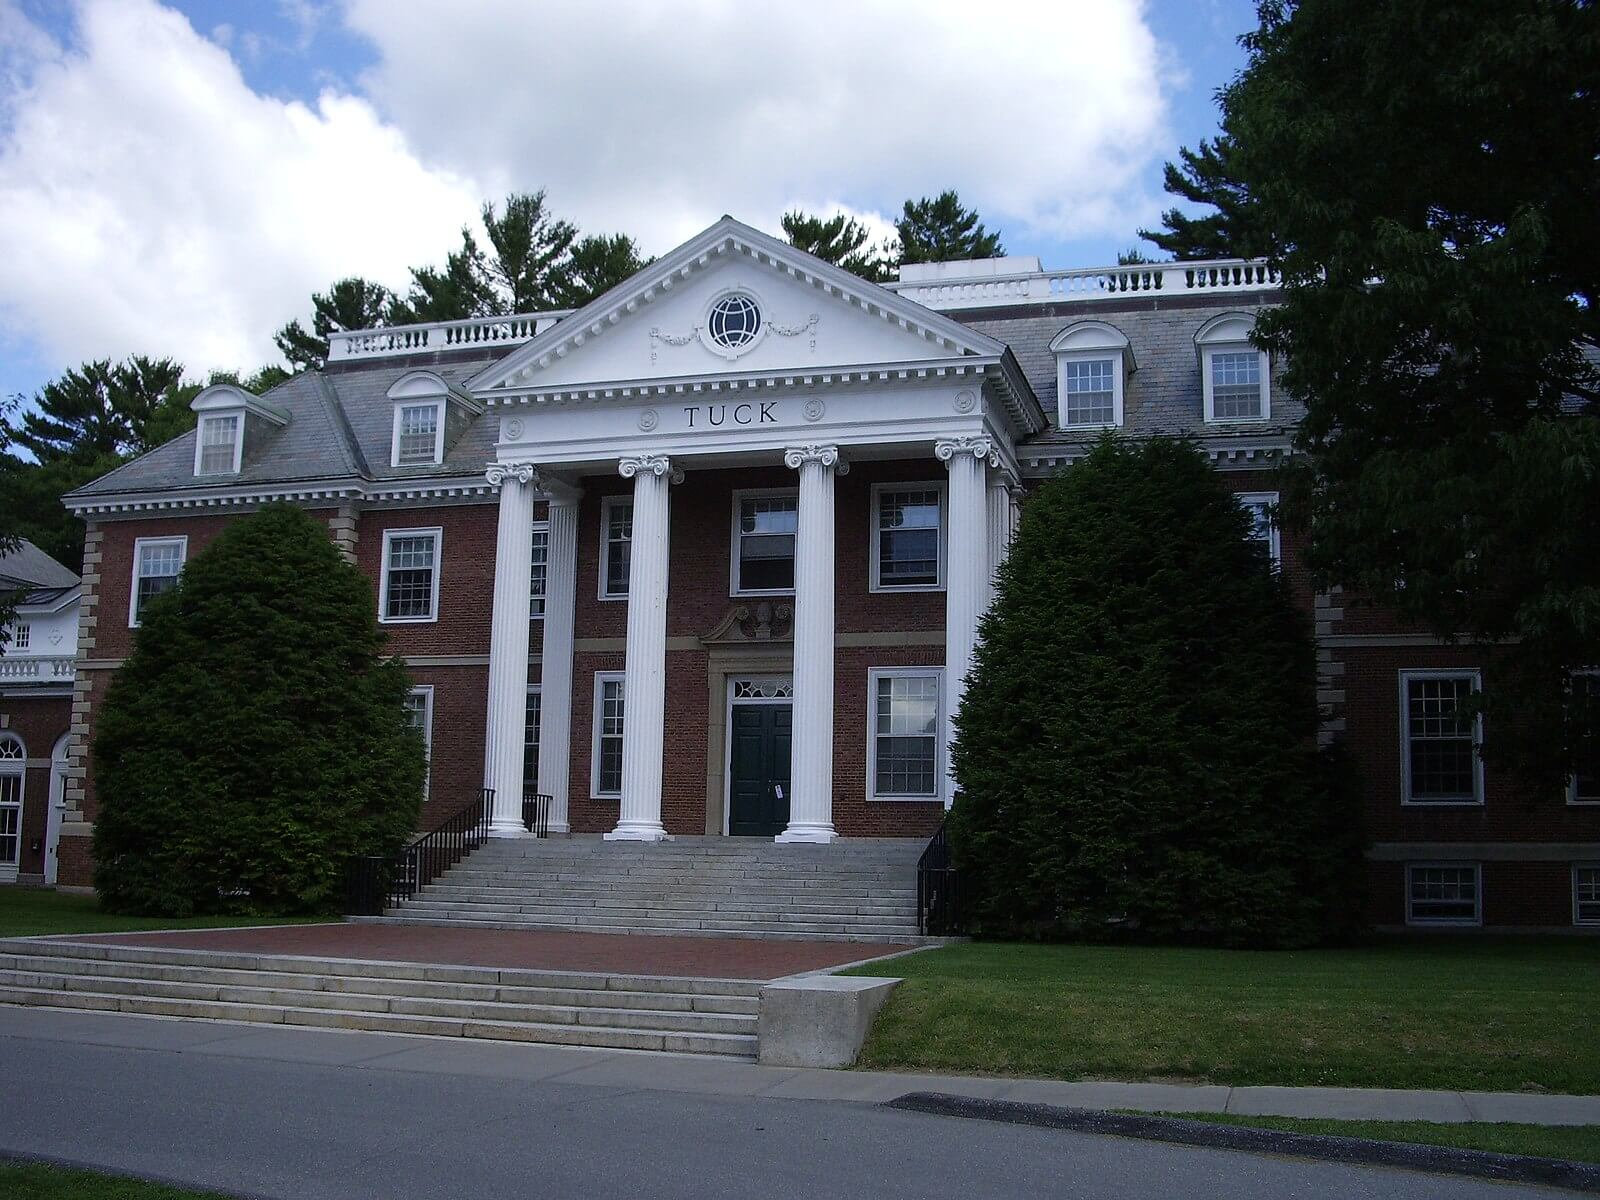 Tuck School of Business at the campus of Dartmouth College in Hanover, NH